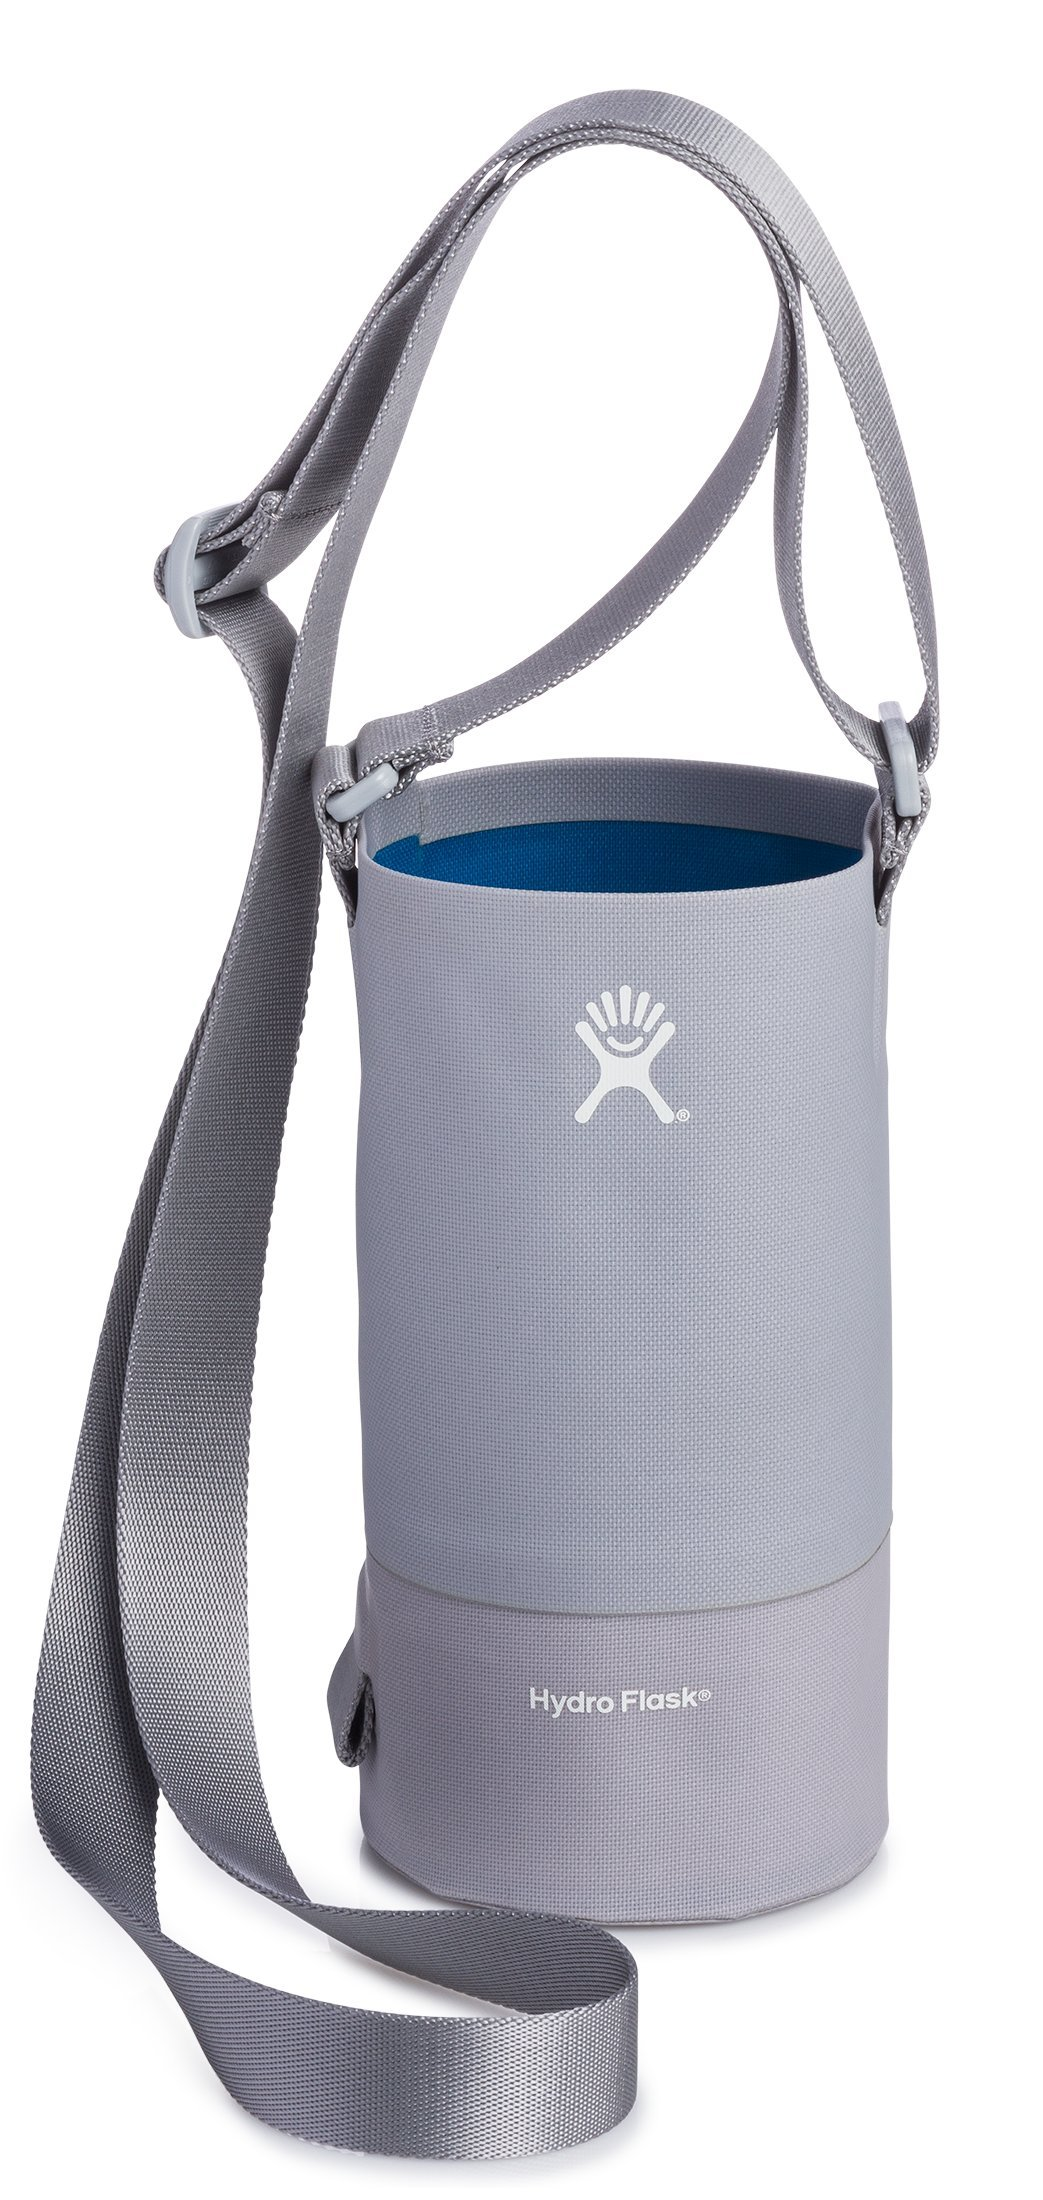 Hydro Flask Large Soft Sided Nylon Tag Along Water Bottle Sling with Pockets, Mist (Fits 32 oz and 40 oz Bottles)